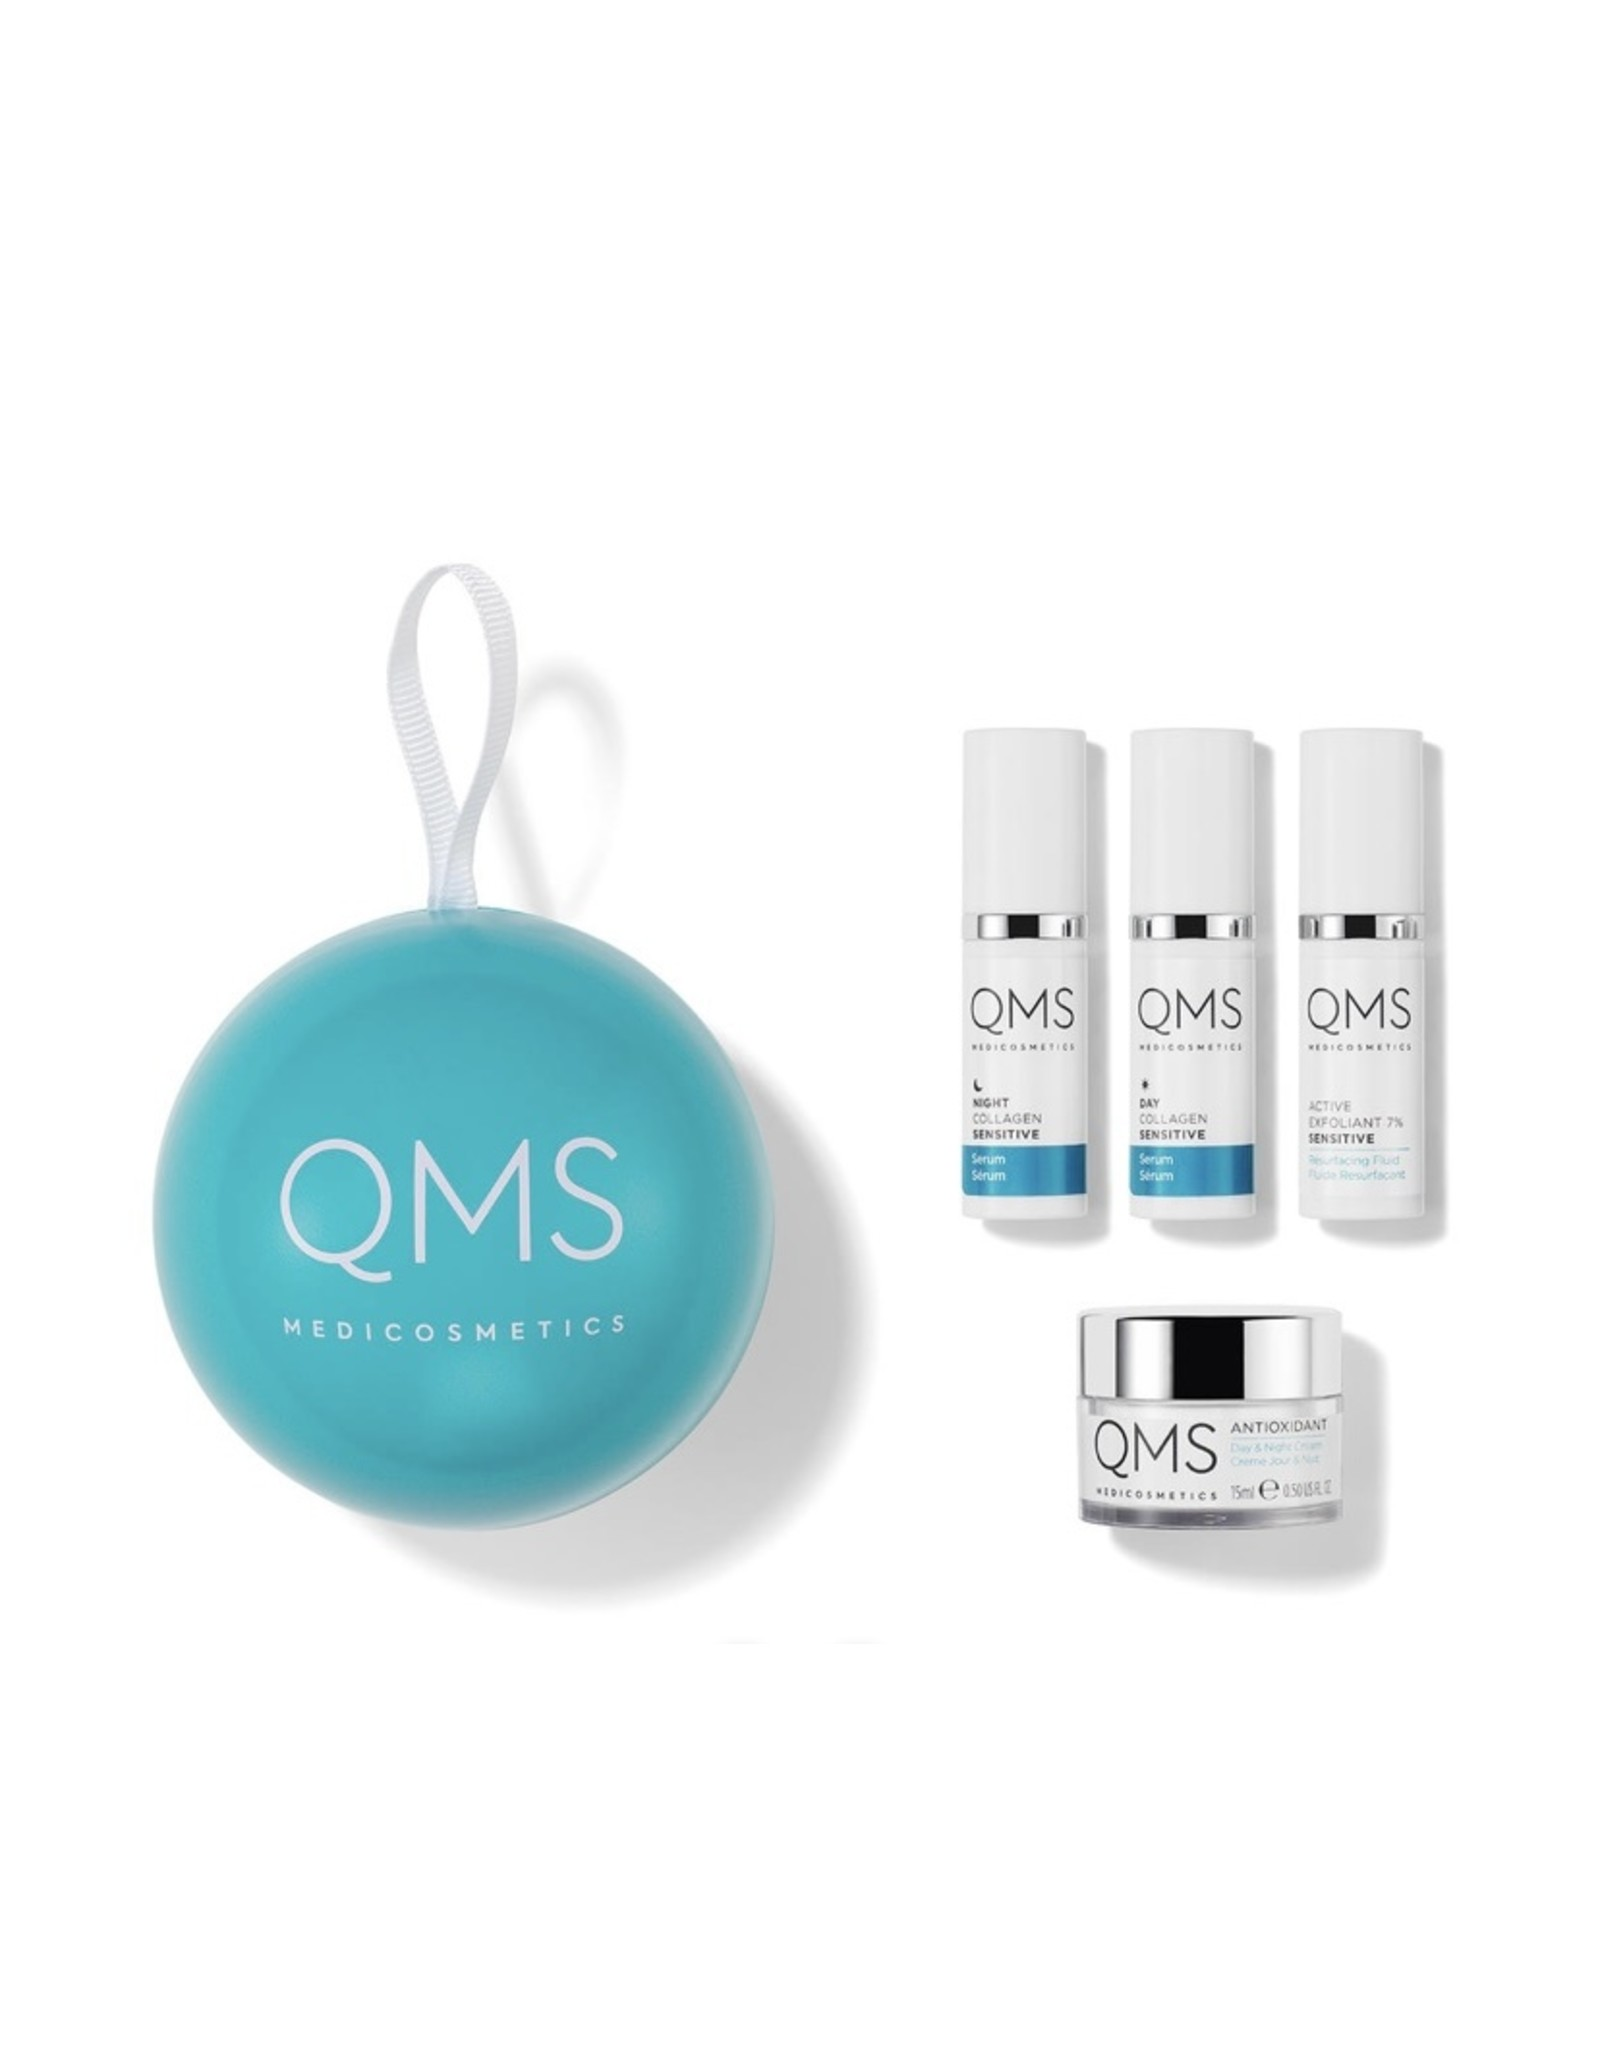 !QMS Medicosmetics Collagen Sooth and Restore Treat